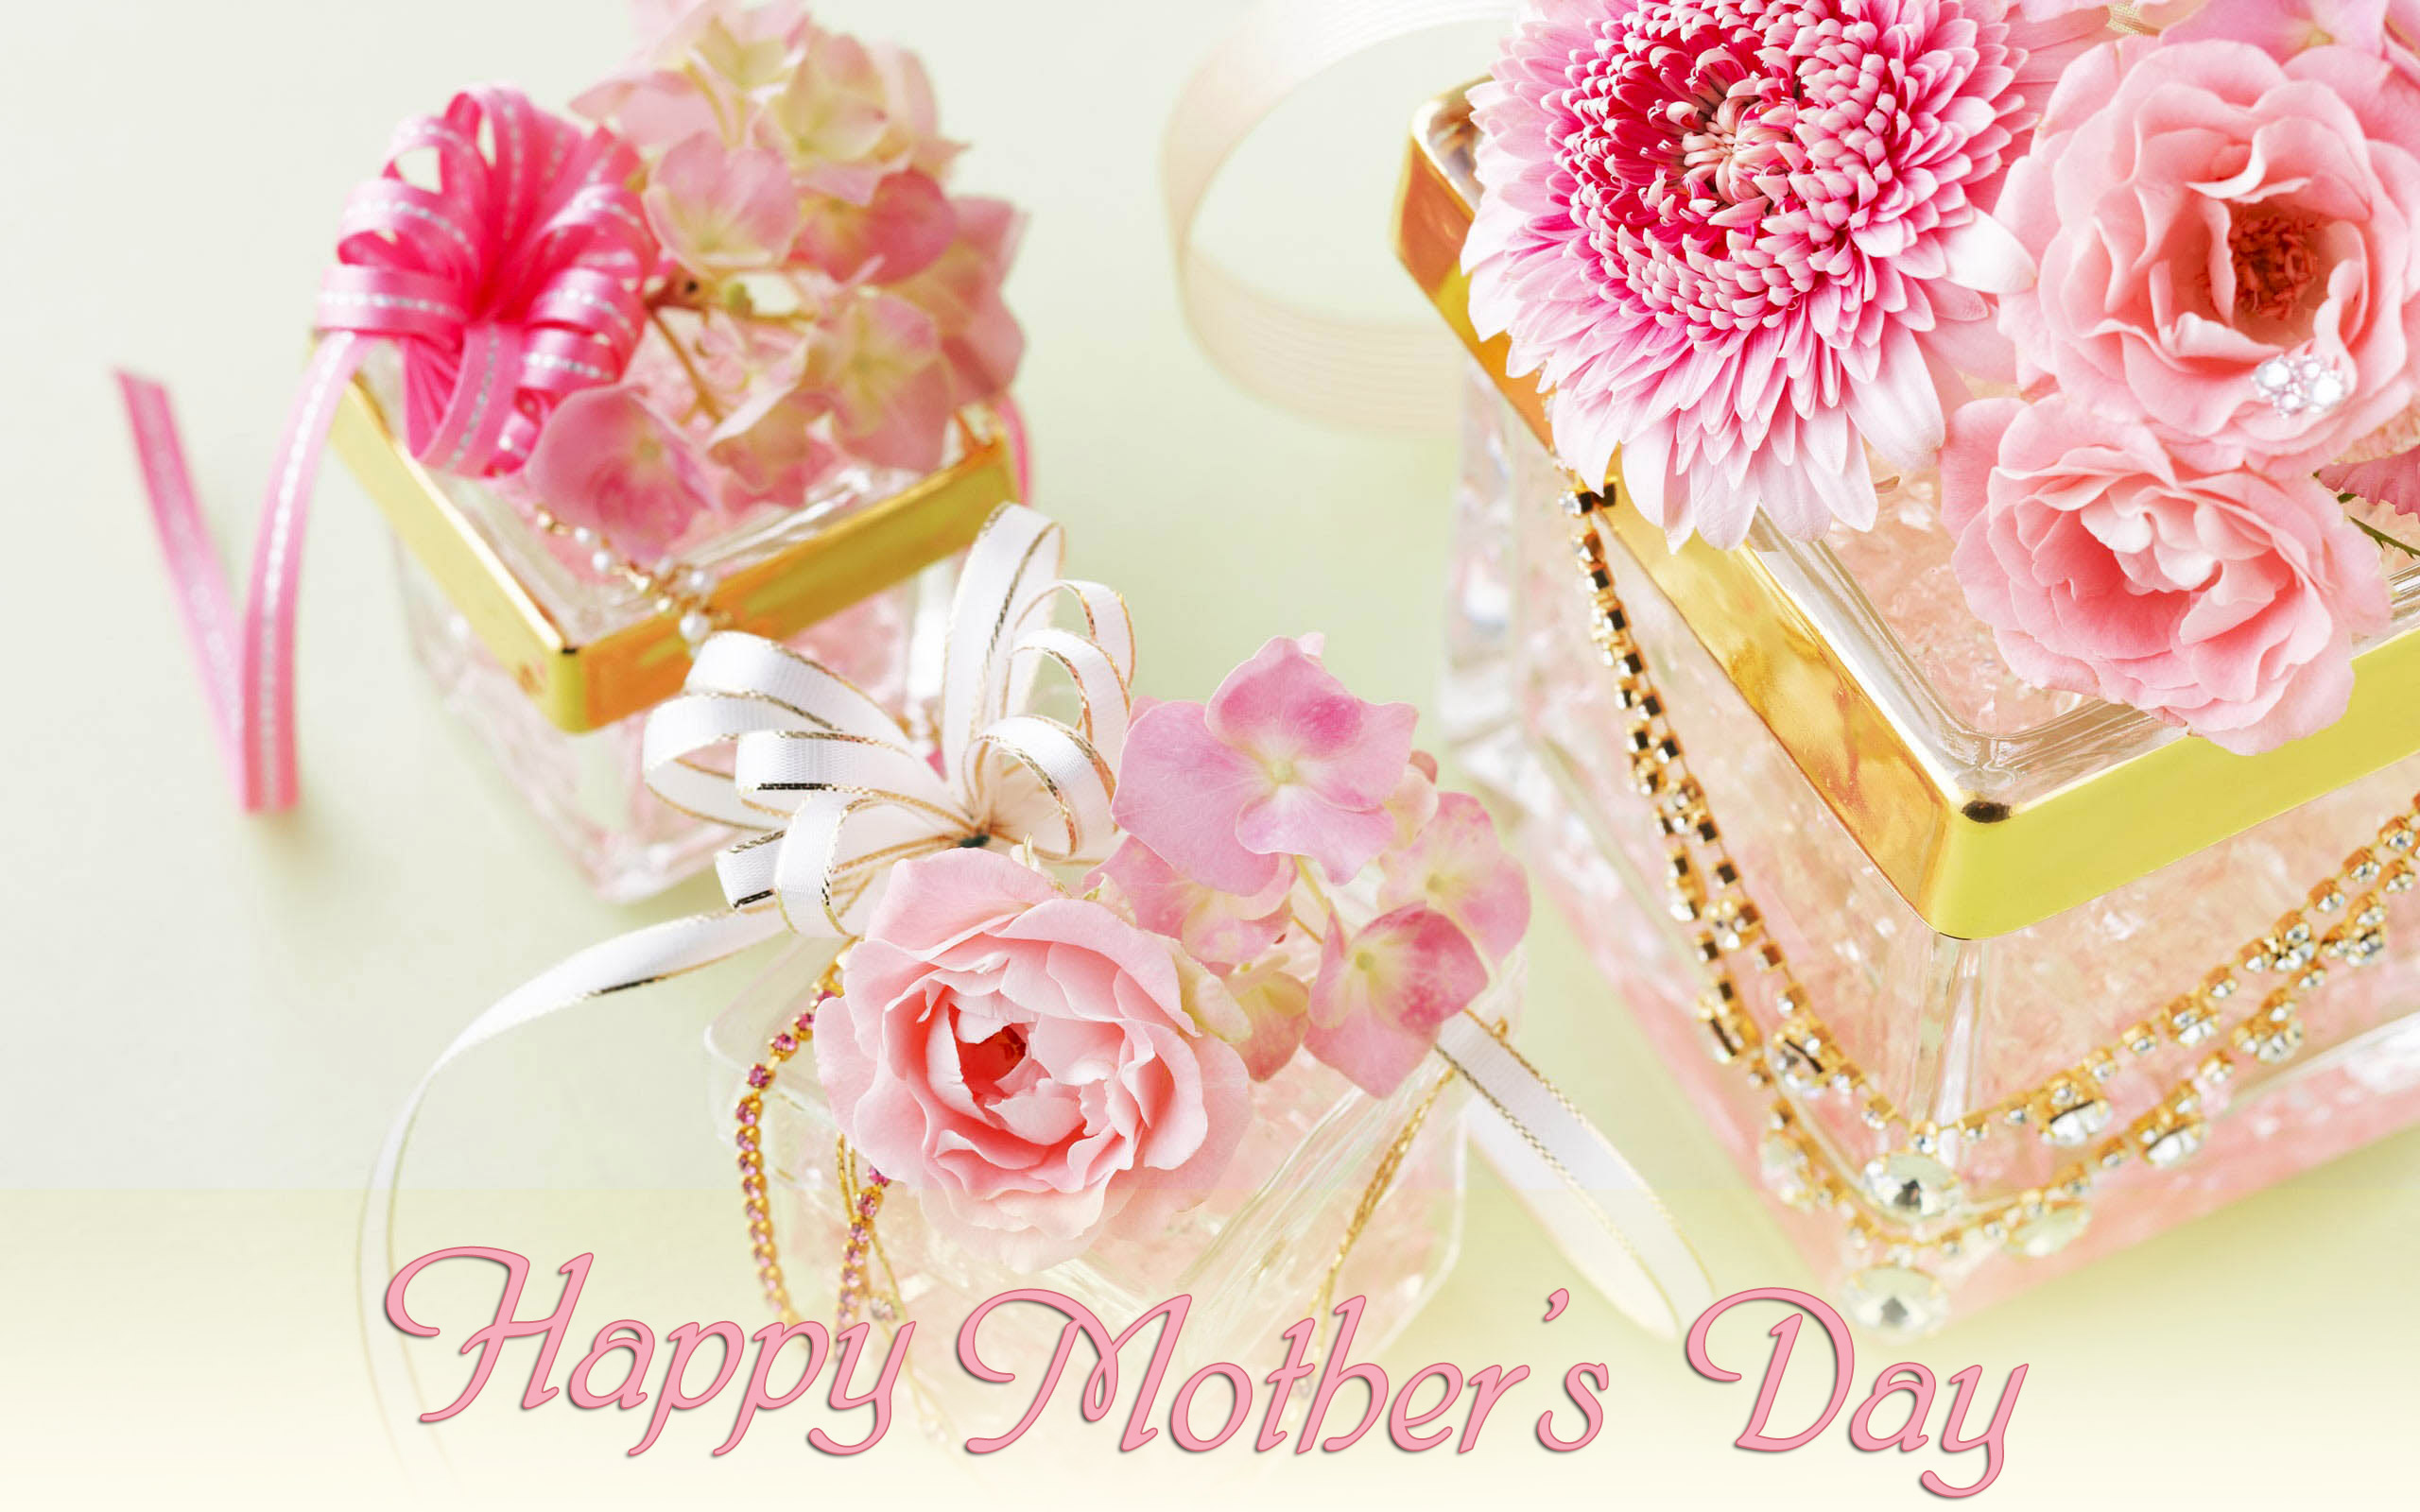 Mothers Day Wallpapers Desktop Fun 4 Readers 2560x1600